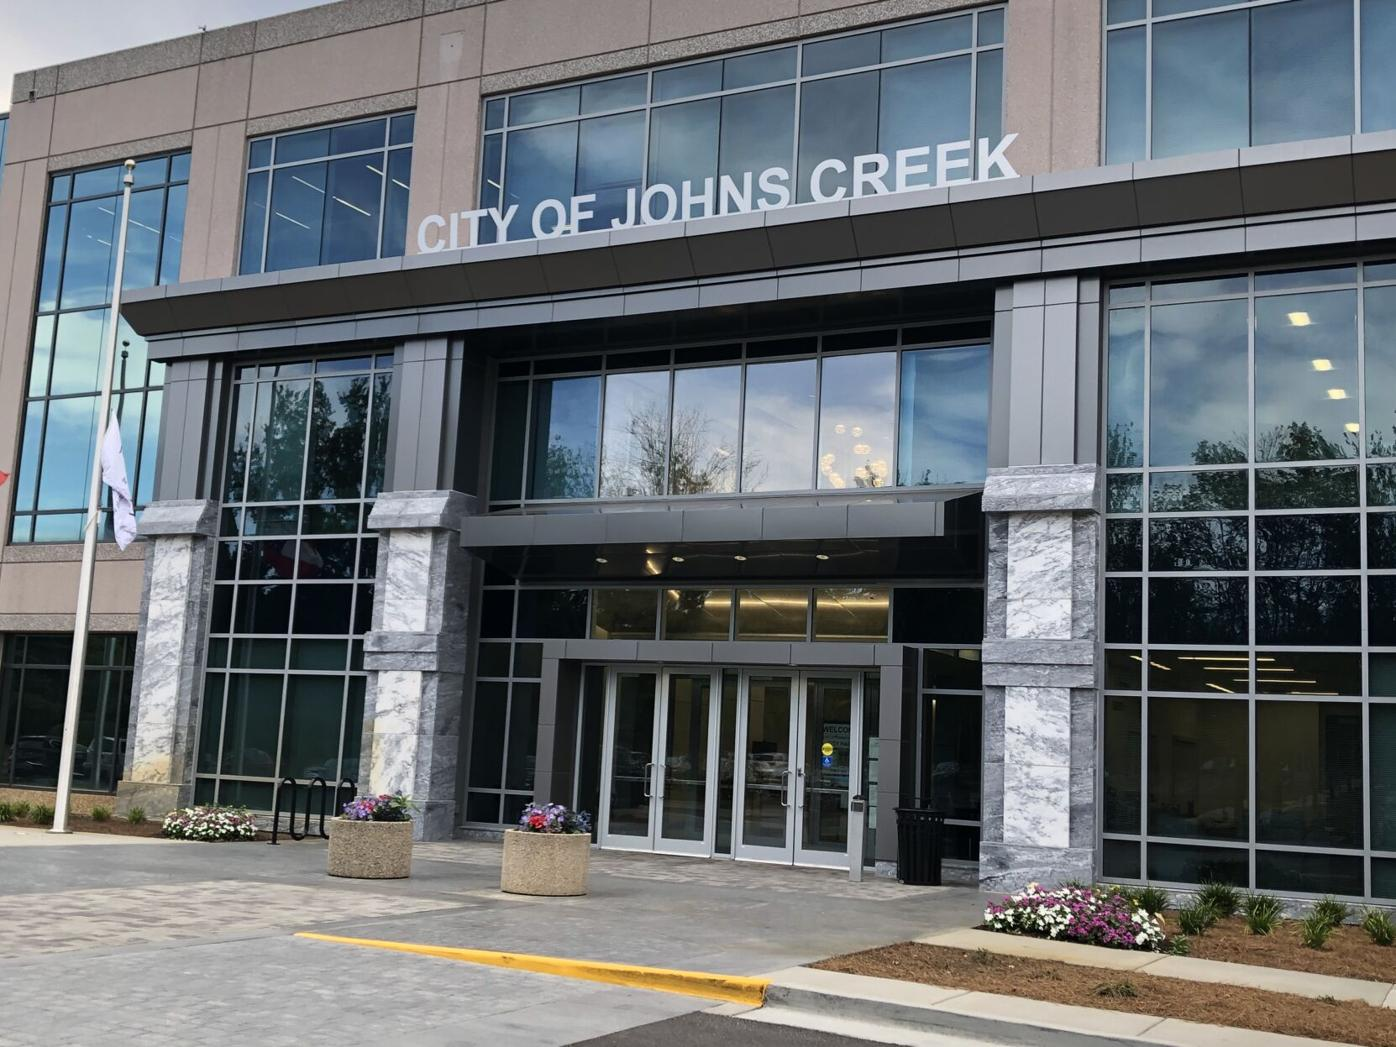 Johns Creek City Hall